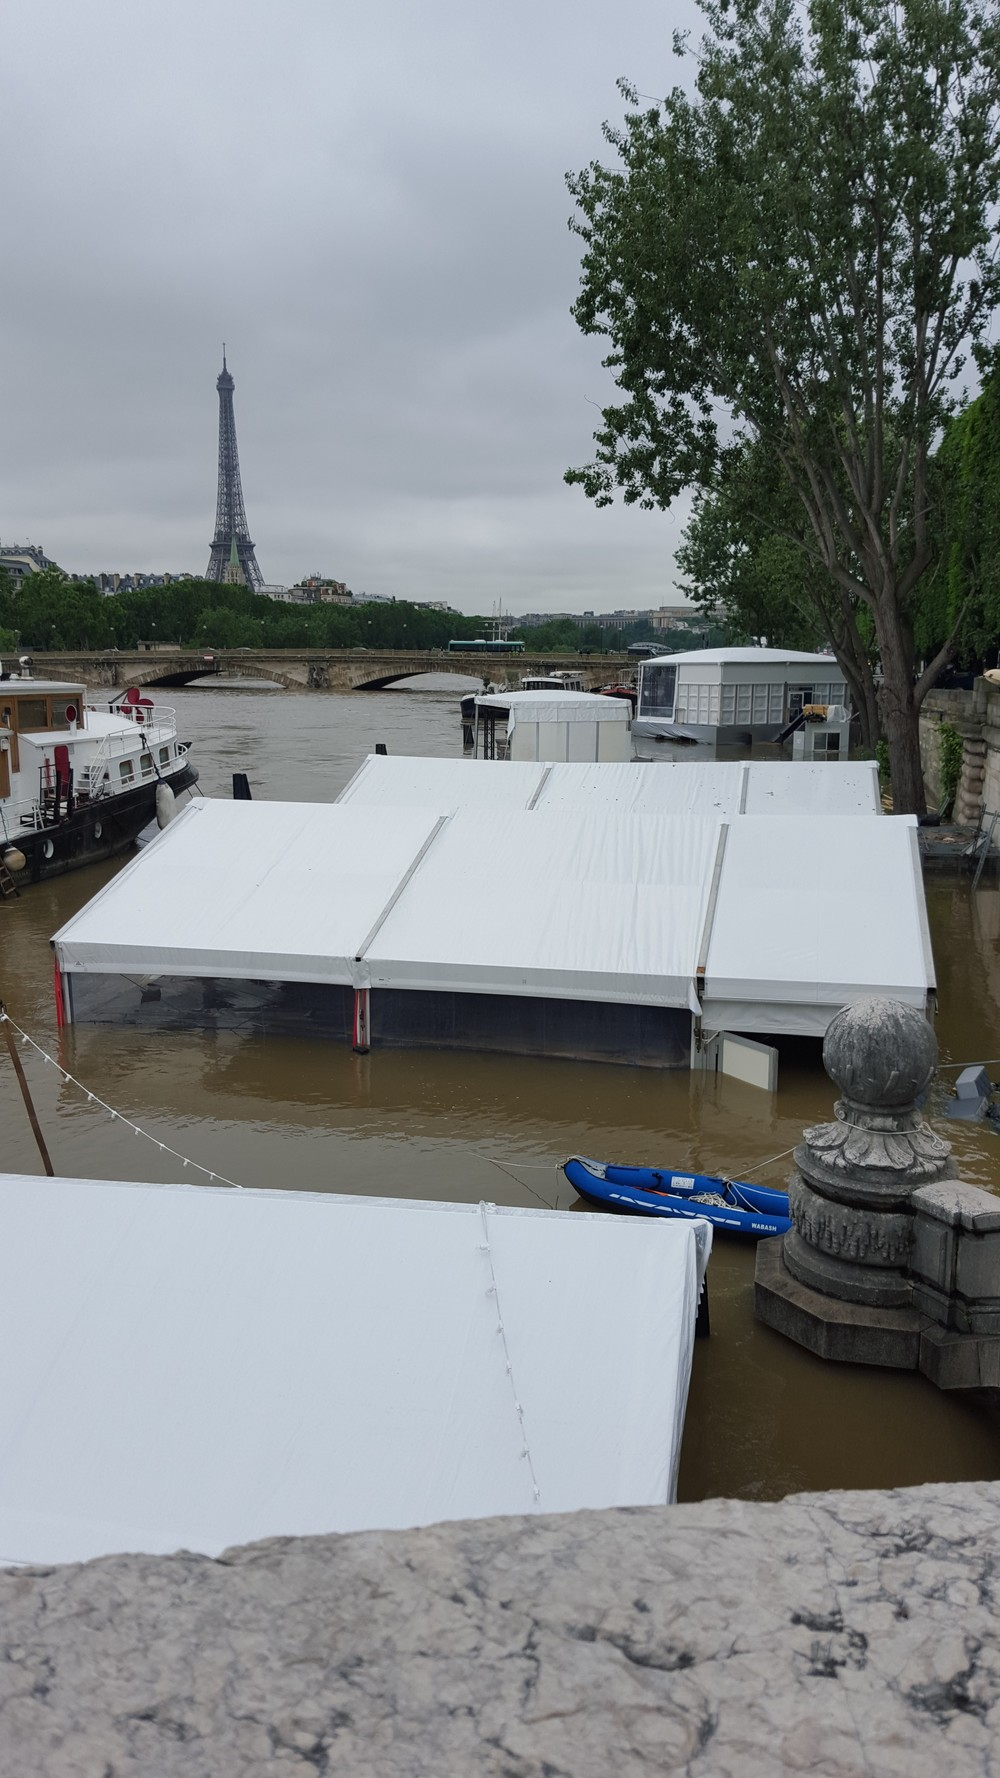 Business that line the banks of the Seine, including bars, are completely flooded.